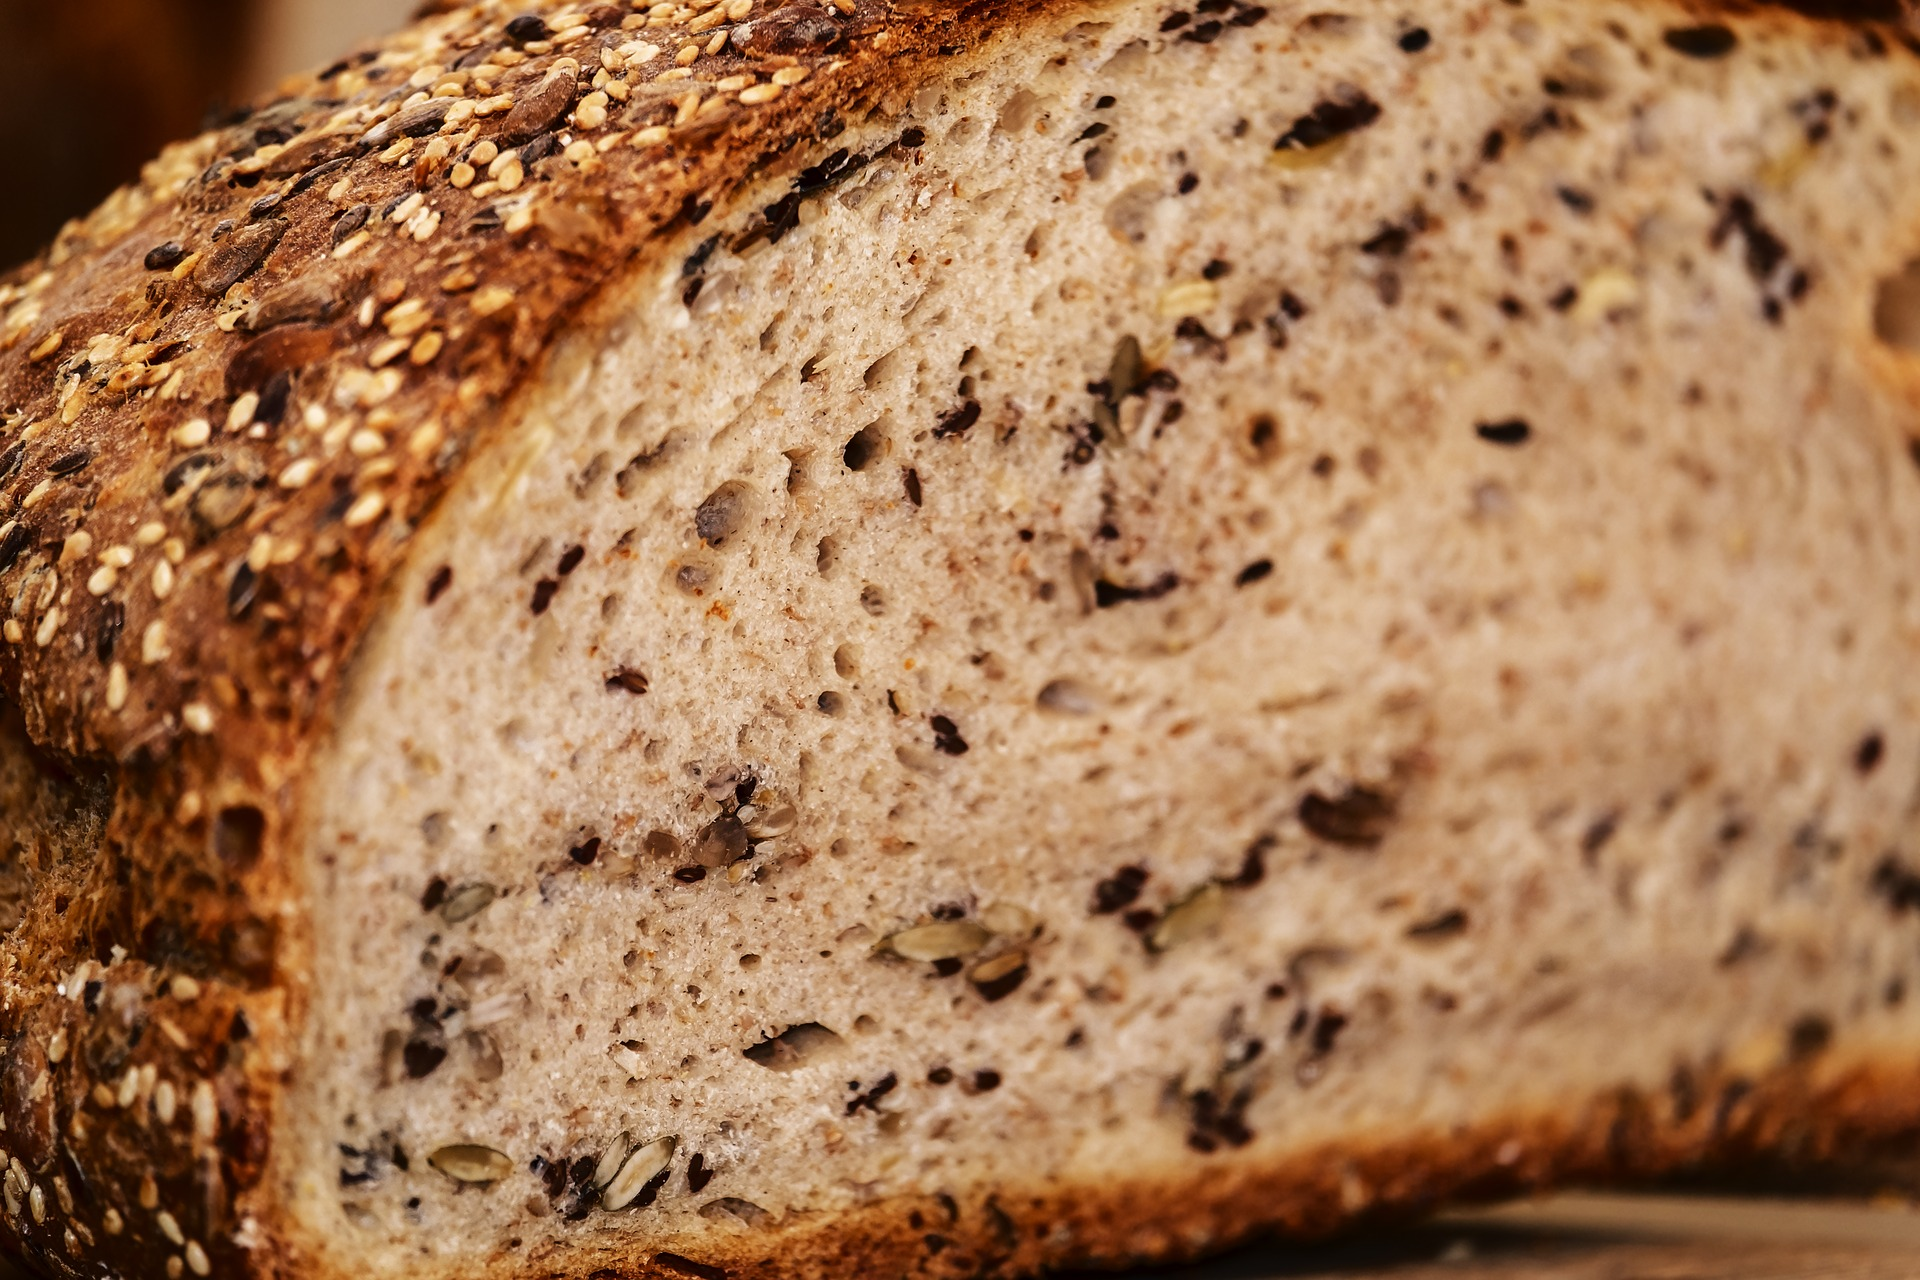 A close-up of a sliced loaf of seeded bread